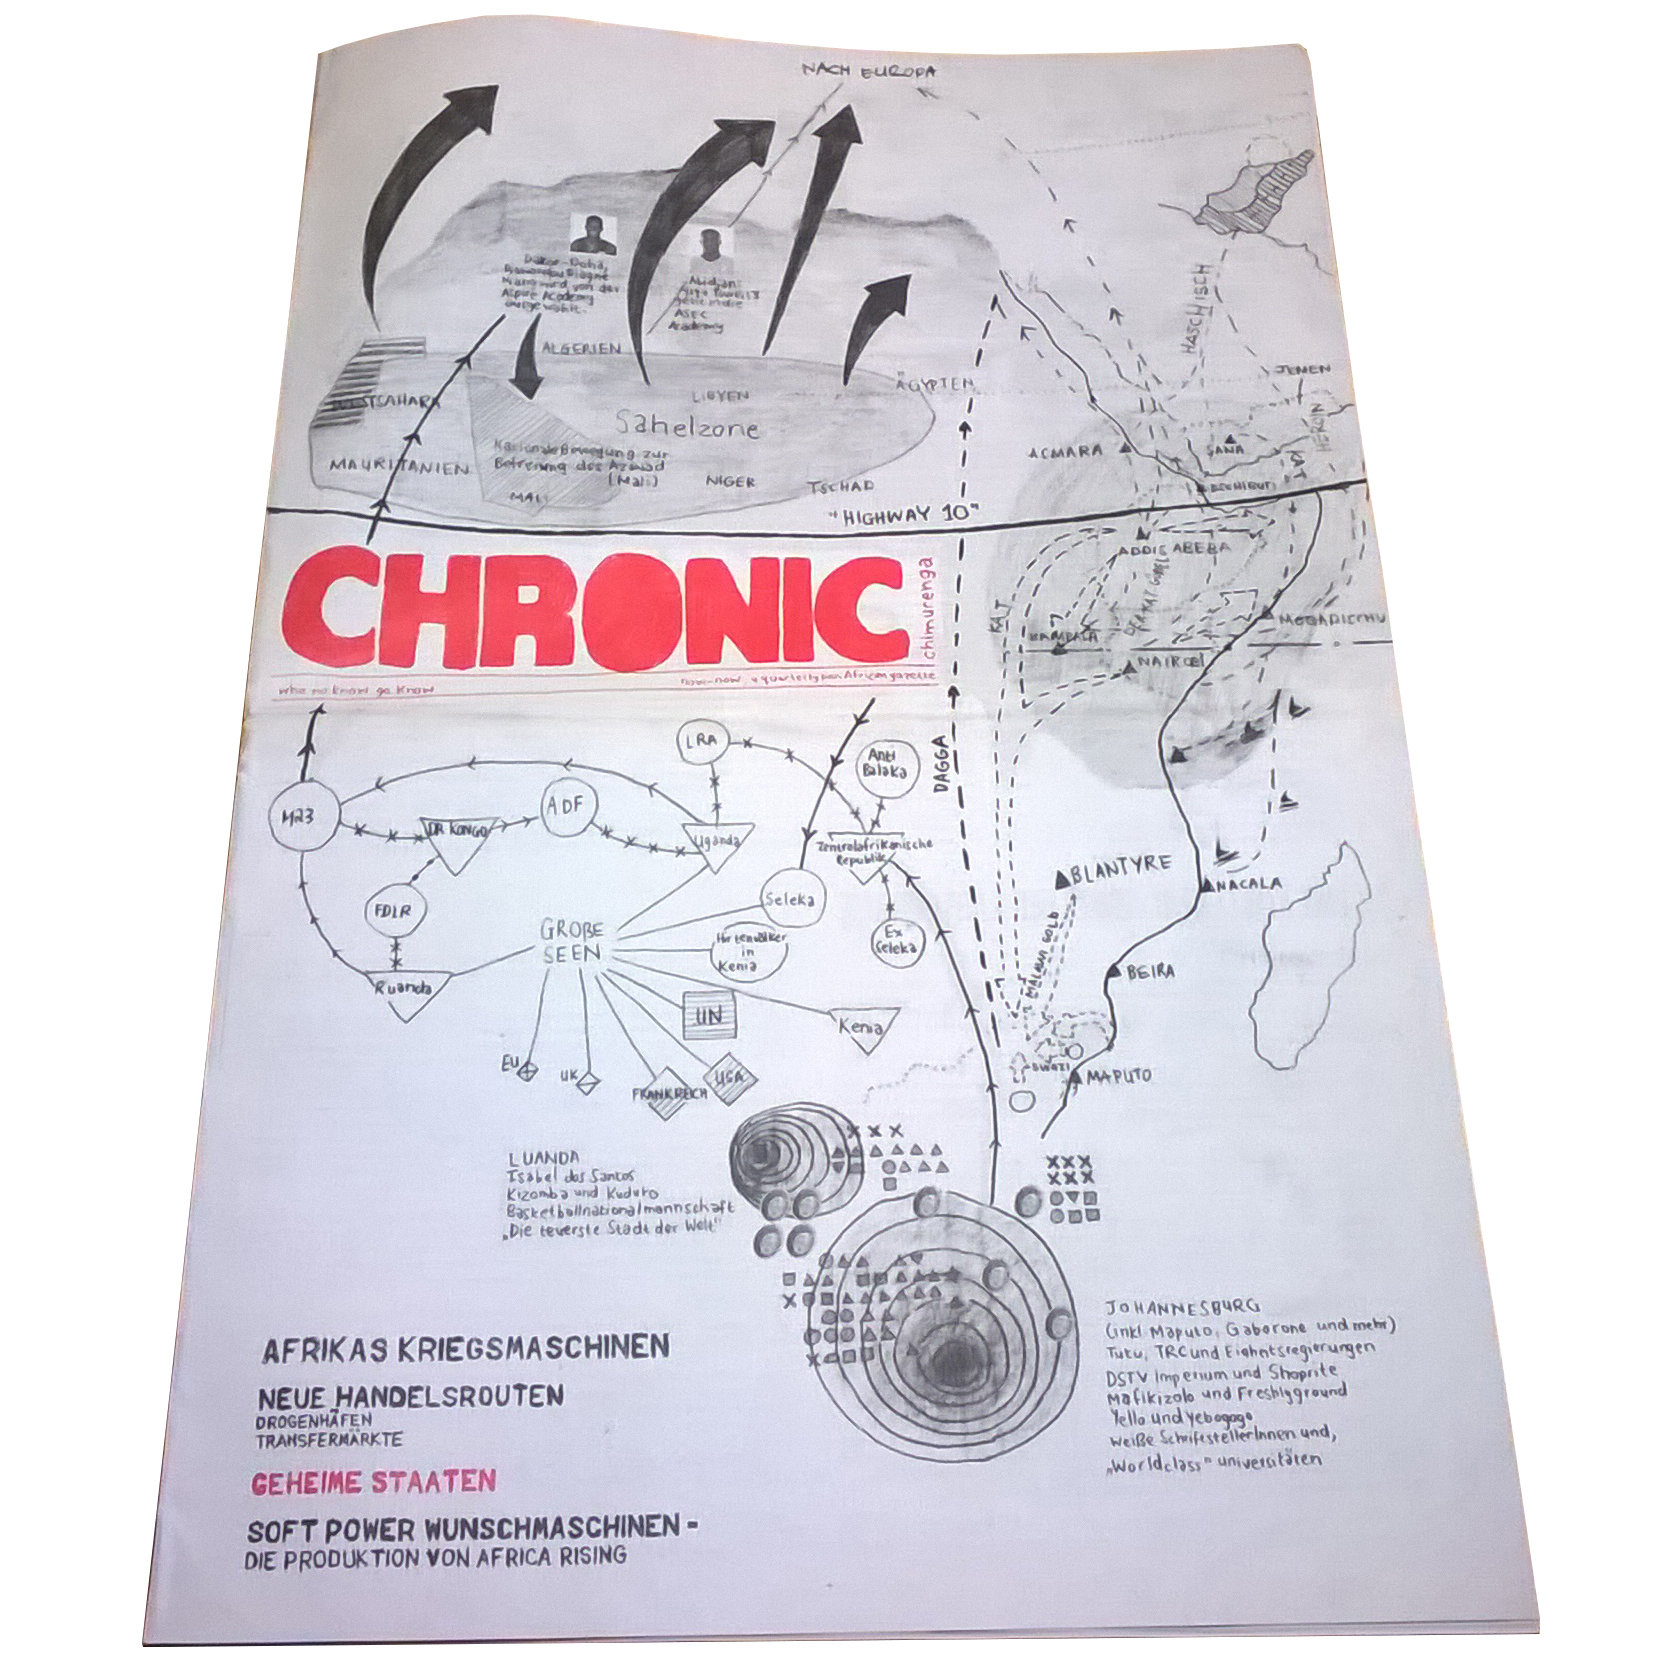 Chimurenga Chronic: German Special Edition (October 2016) Print CCG2